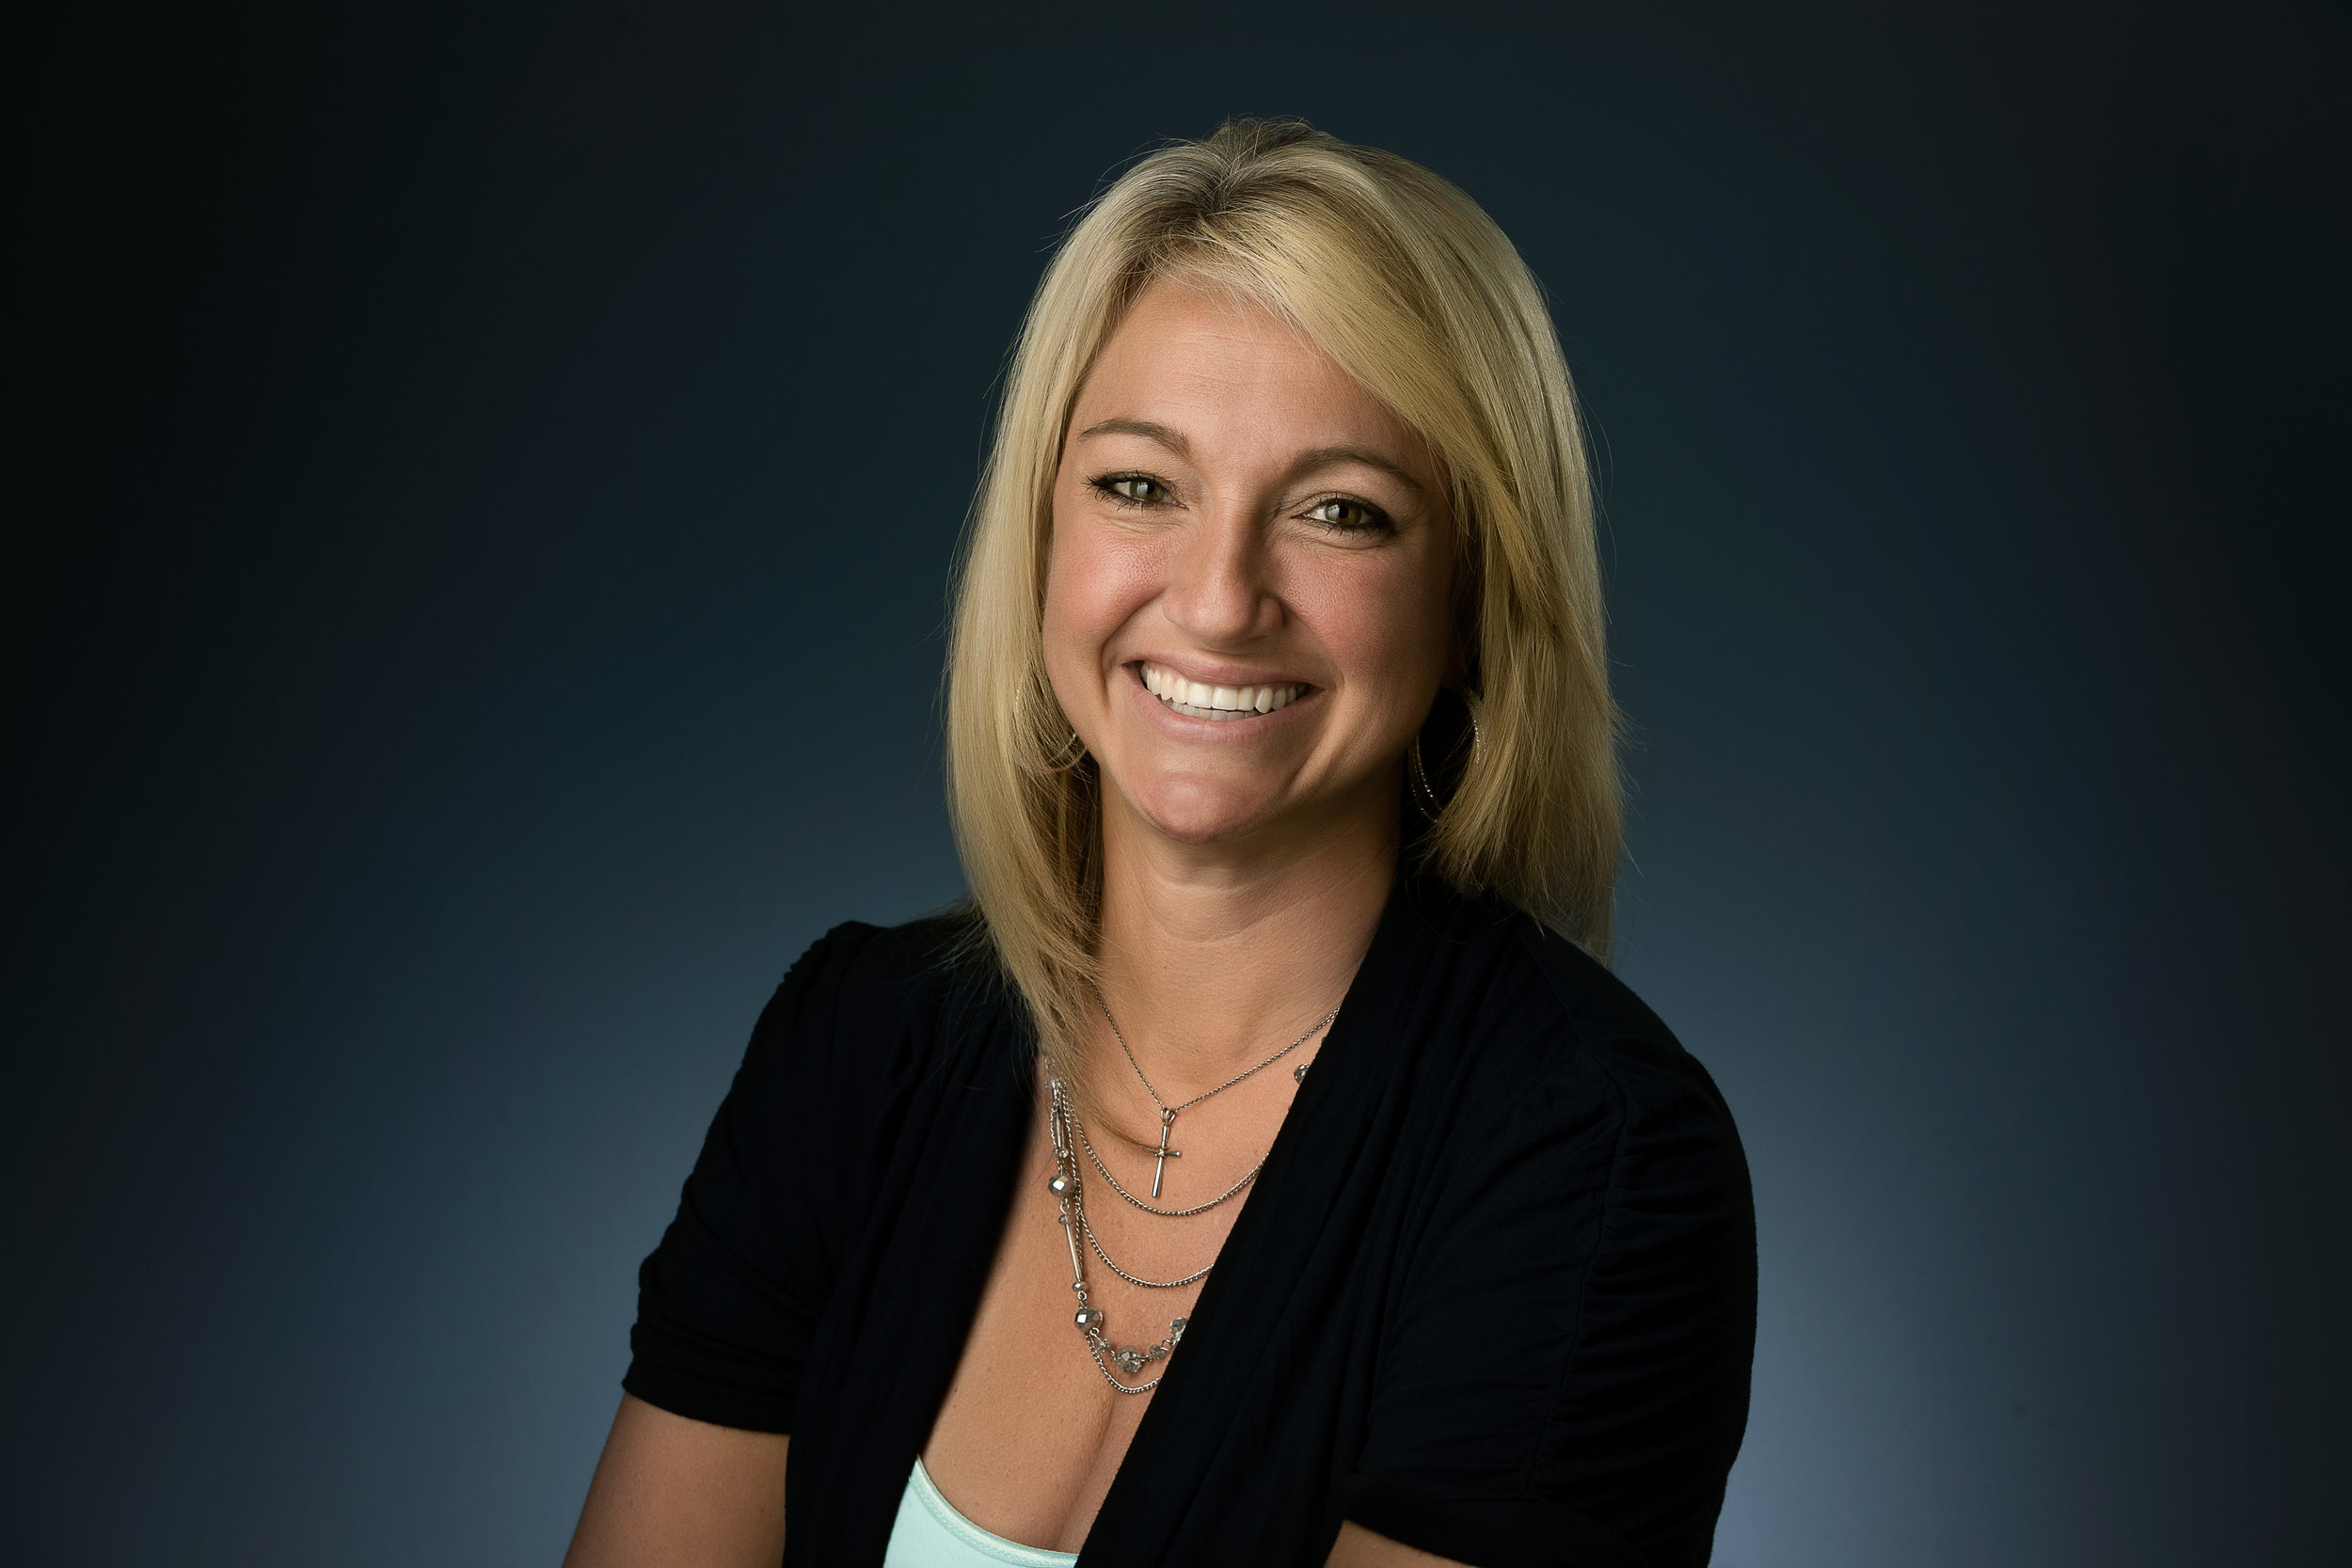 Jacci Konkle, Real Estate Agent, Coach, Investor, and Founder of the Appleton REIA